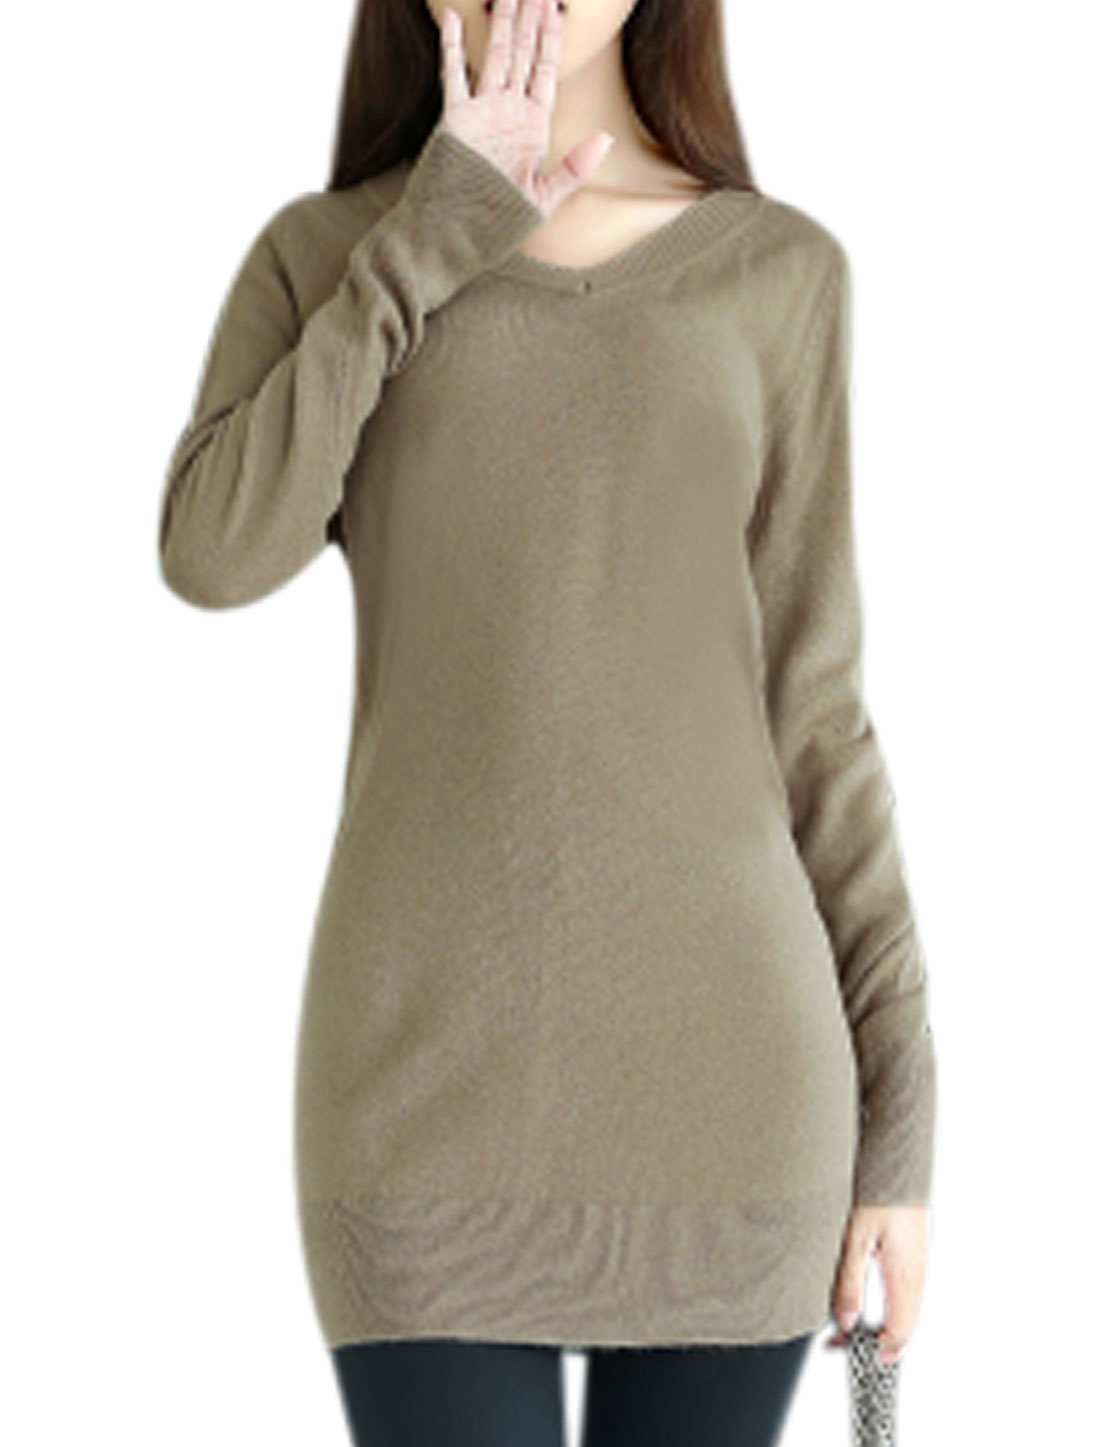 V Neck Long Sleeves Slim Fit Beige Tunic Knit Shirt for Women XS